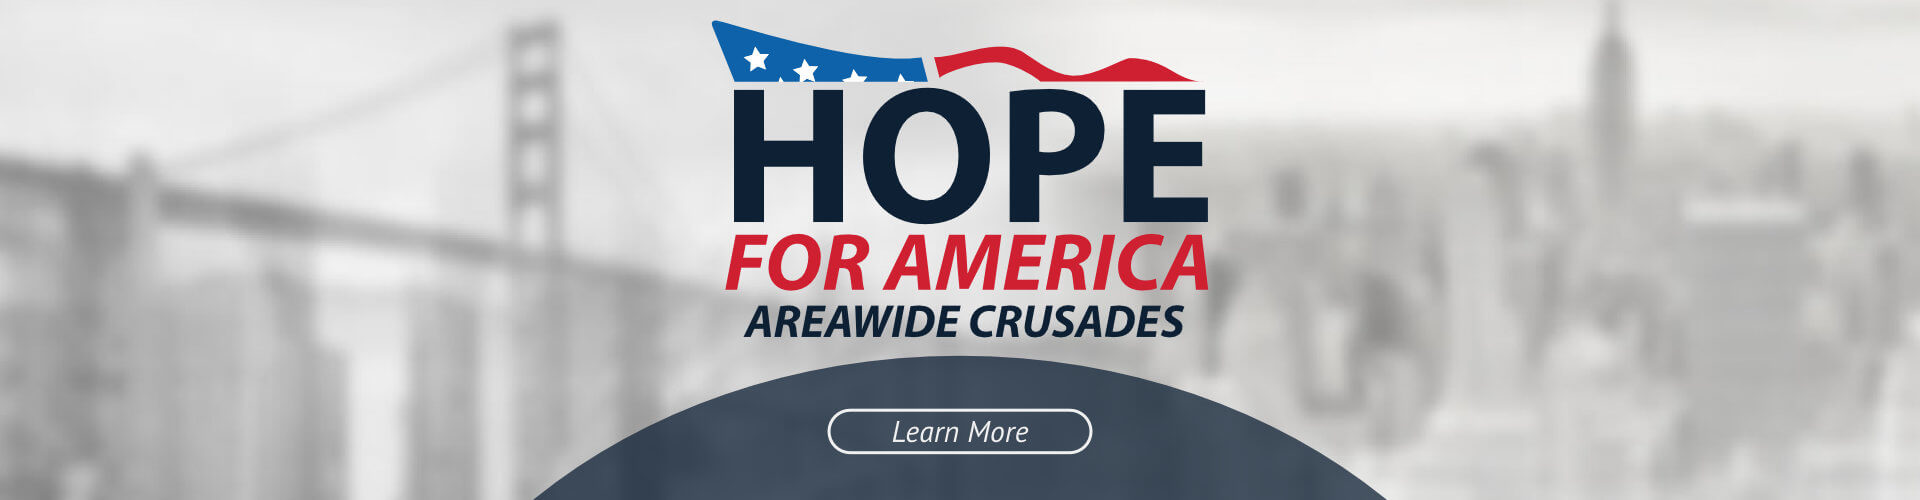 Hope For America Crusade